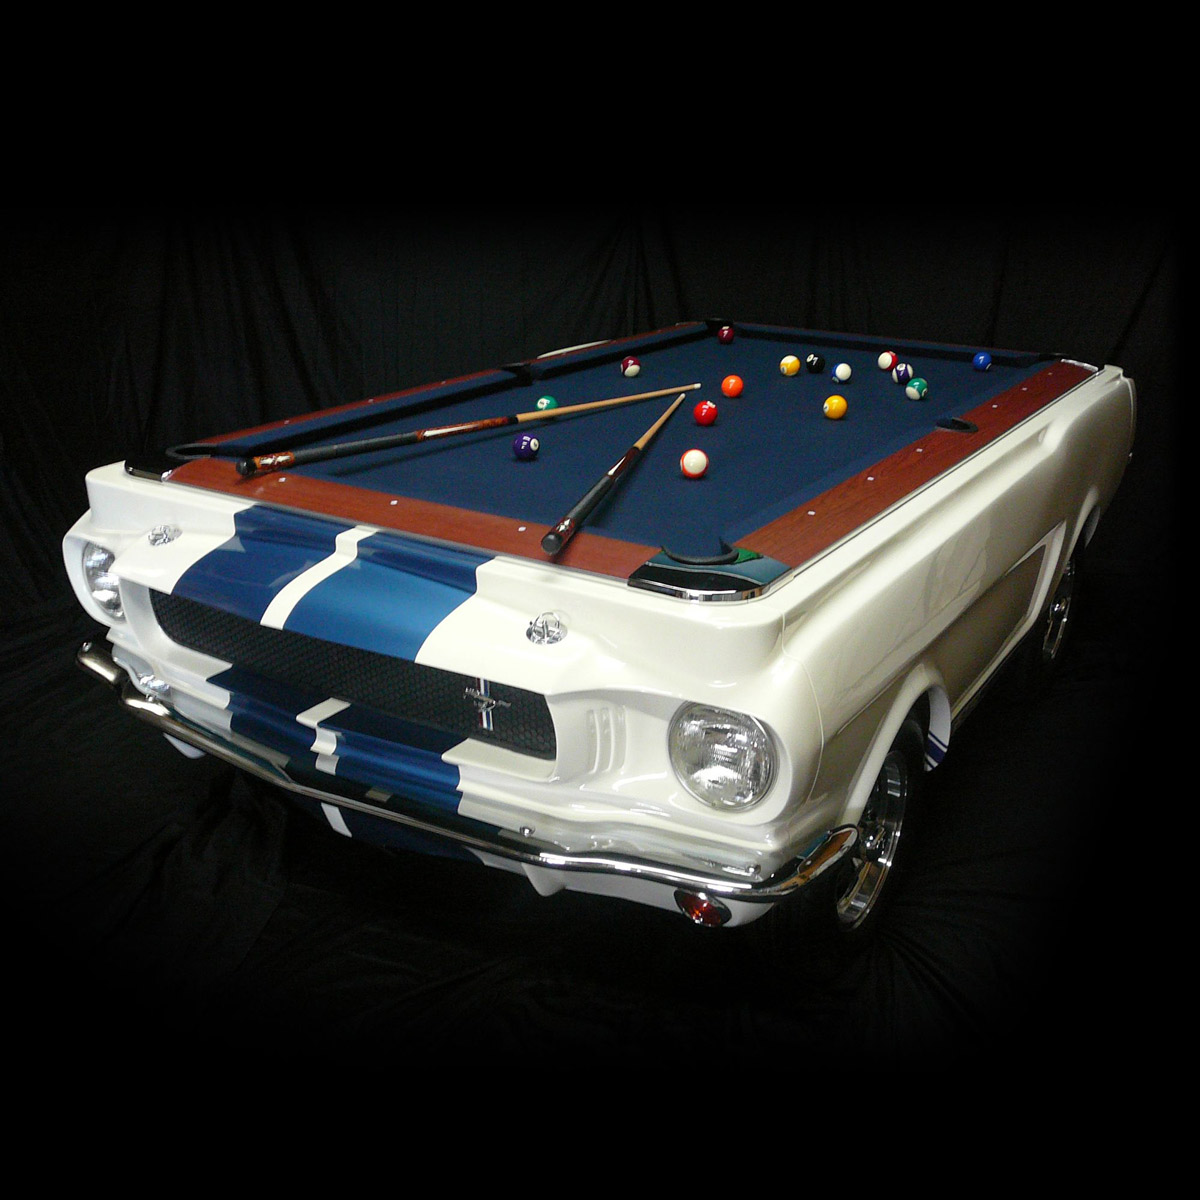 Cool Pool Tables >> 1965 Shelby GT 350 Pool Table - The Green Head